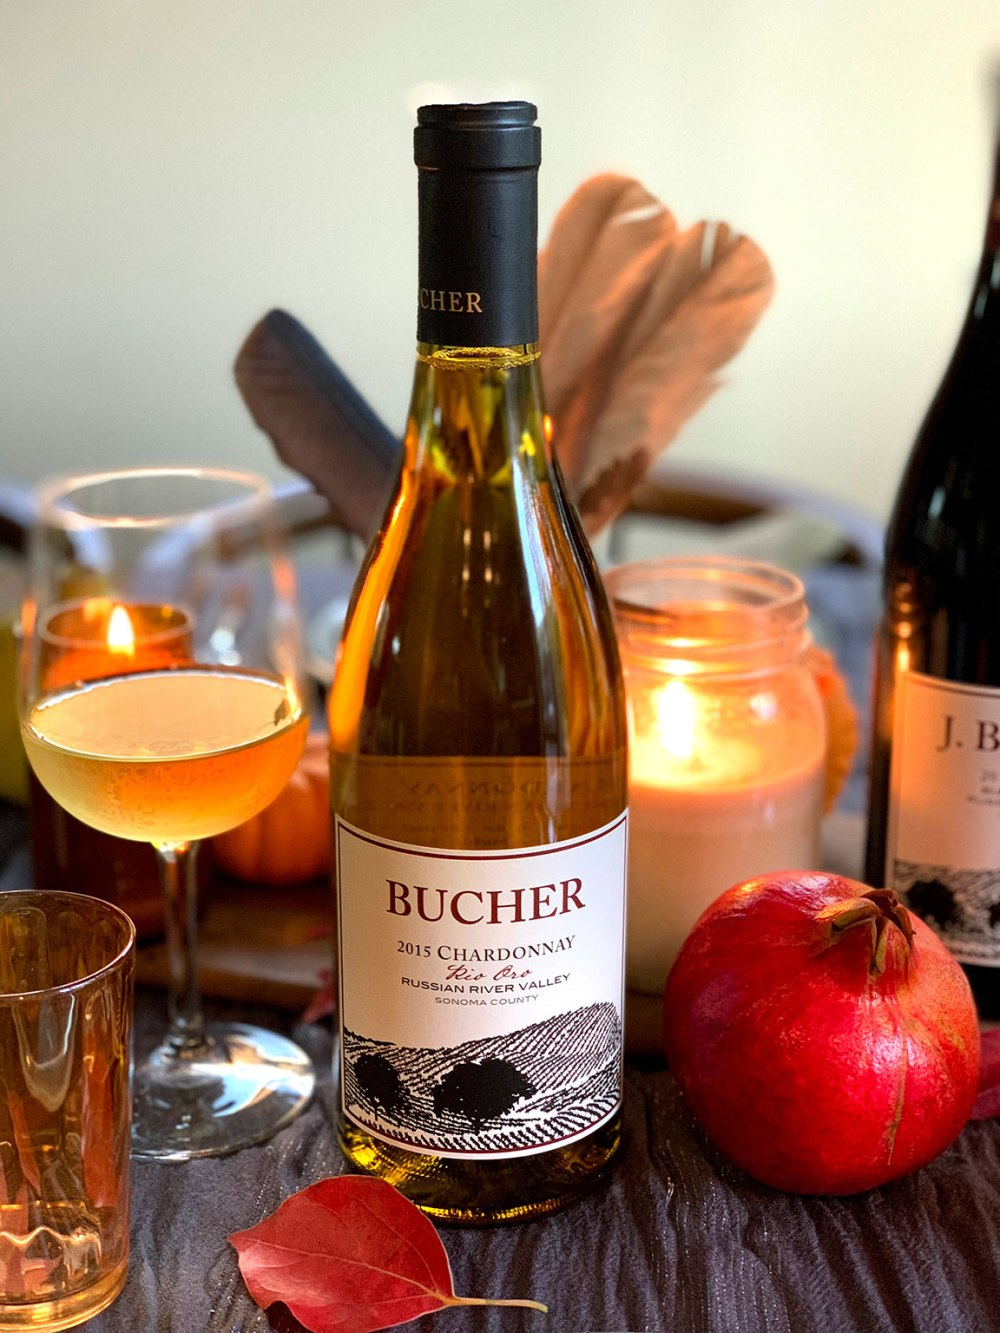 bucher wines windsor california review 2015 Chardonnay